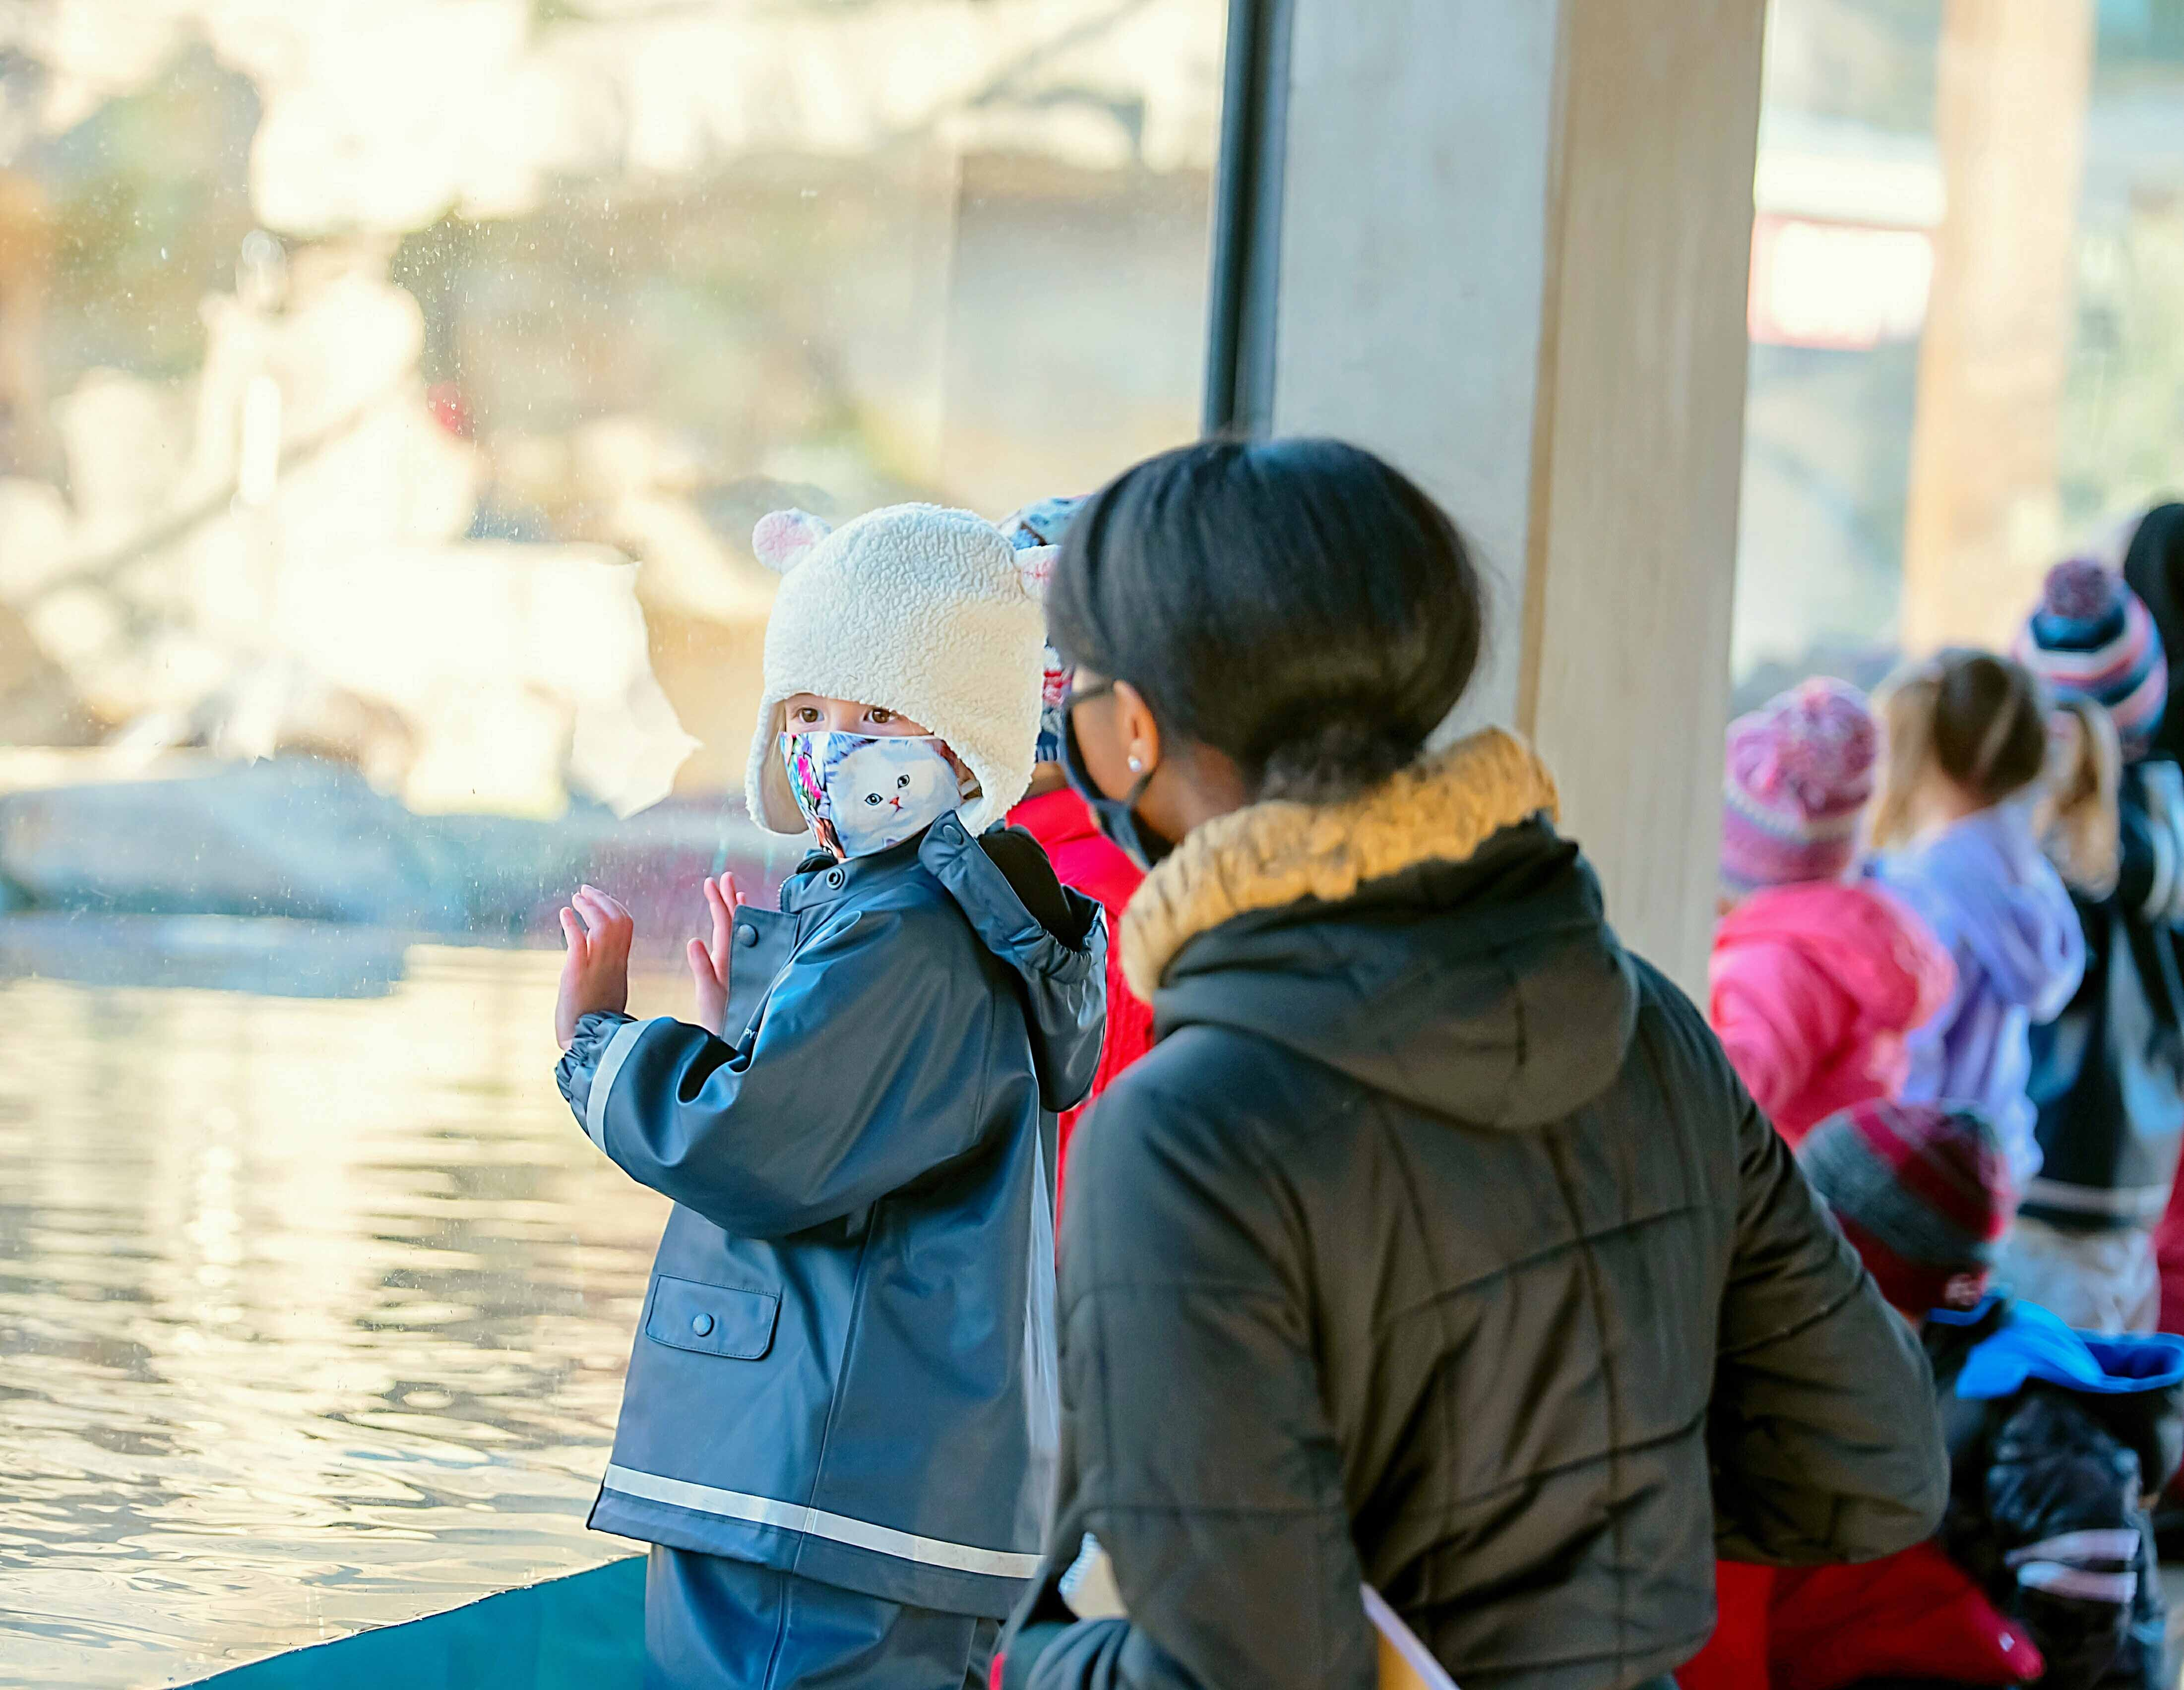 An adult and child look into an exhibit at Riverbanks Zoo and Garden